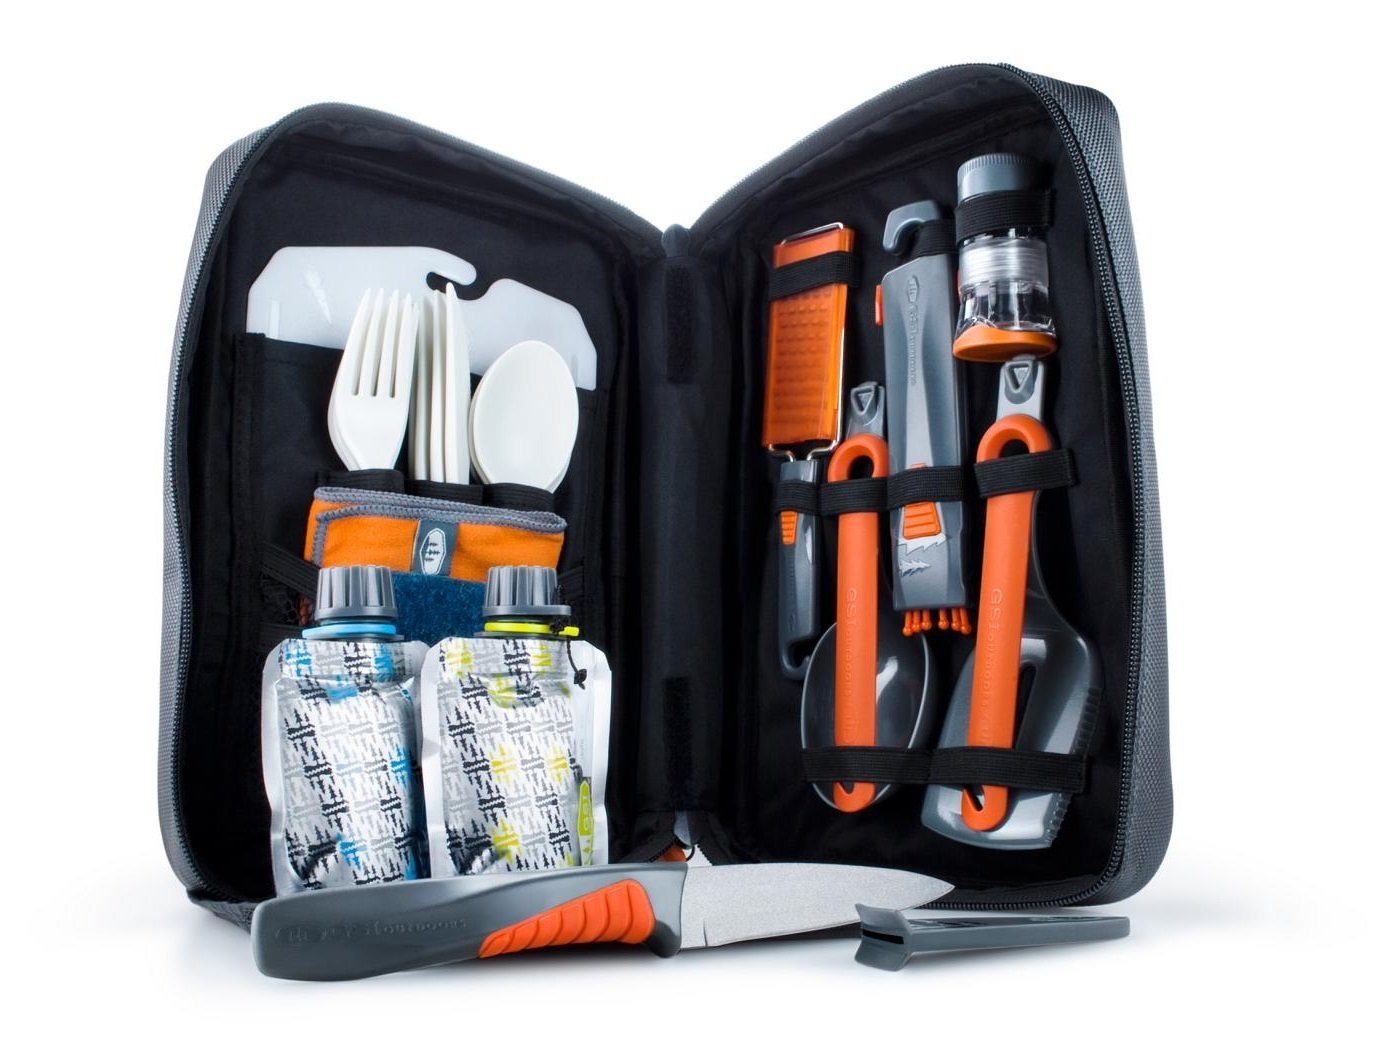 Camping cooking gear with 4 full sets of cutlery and utensils.